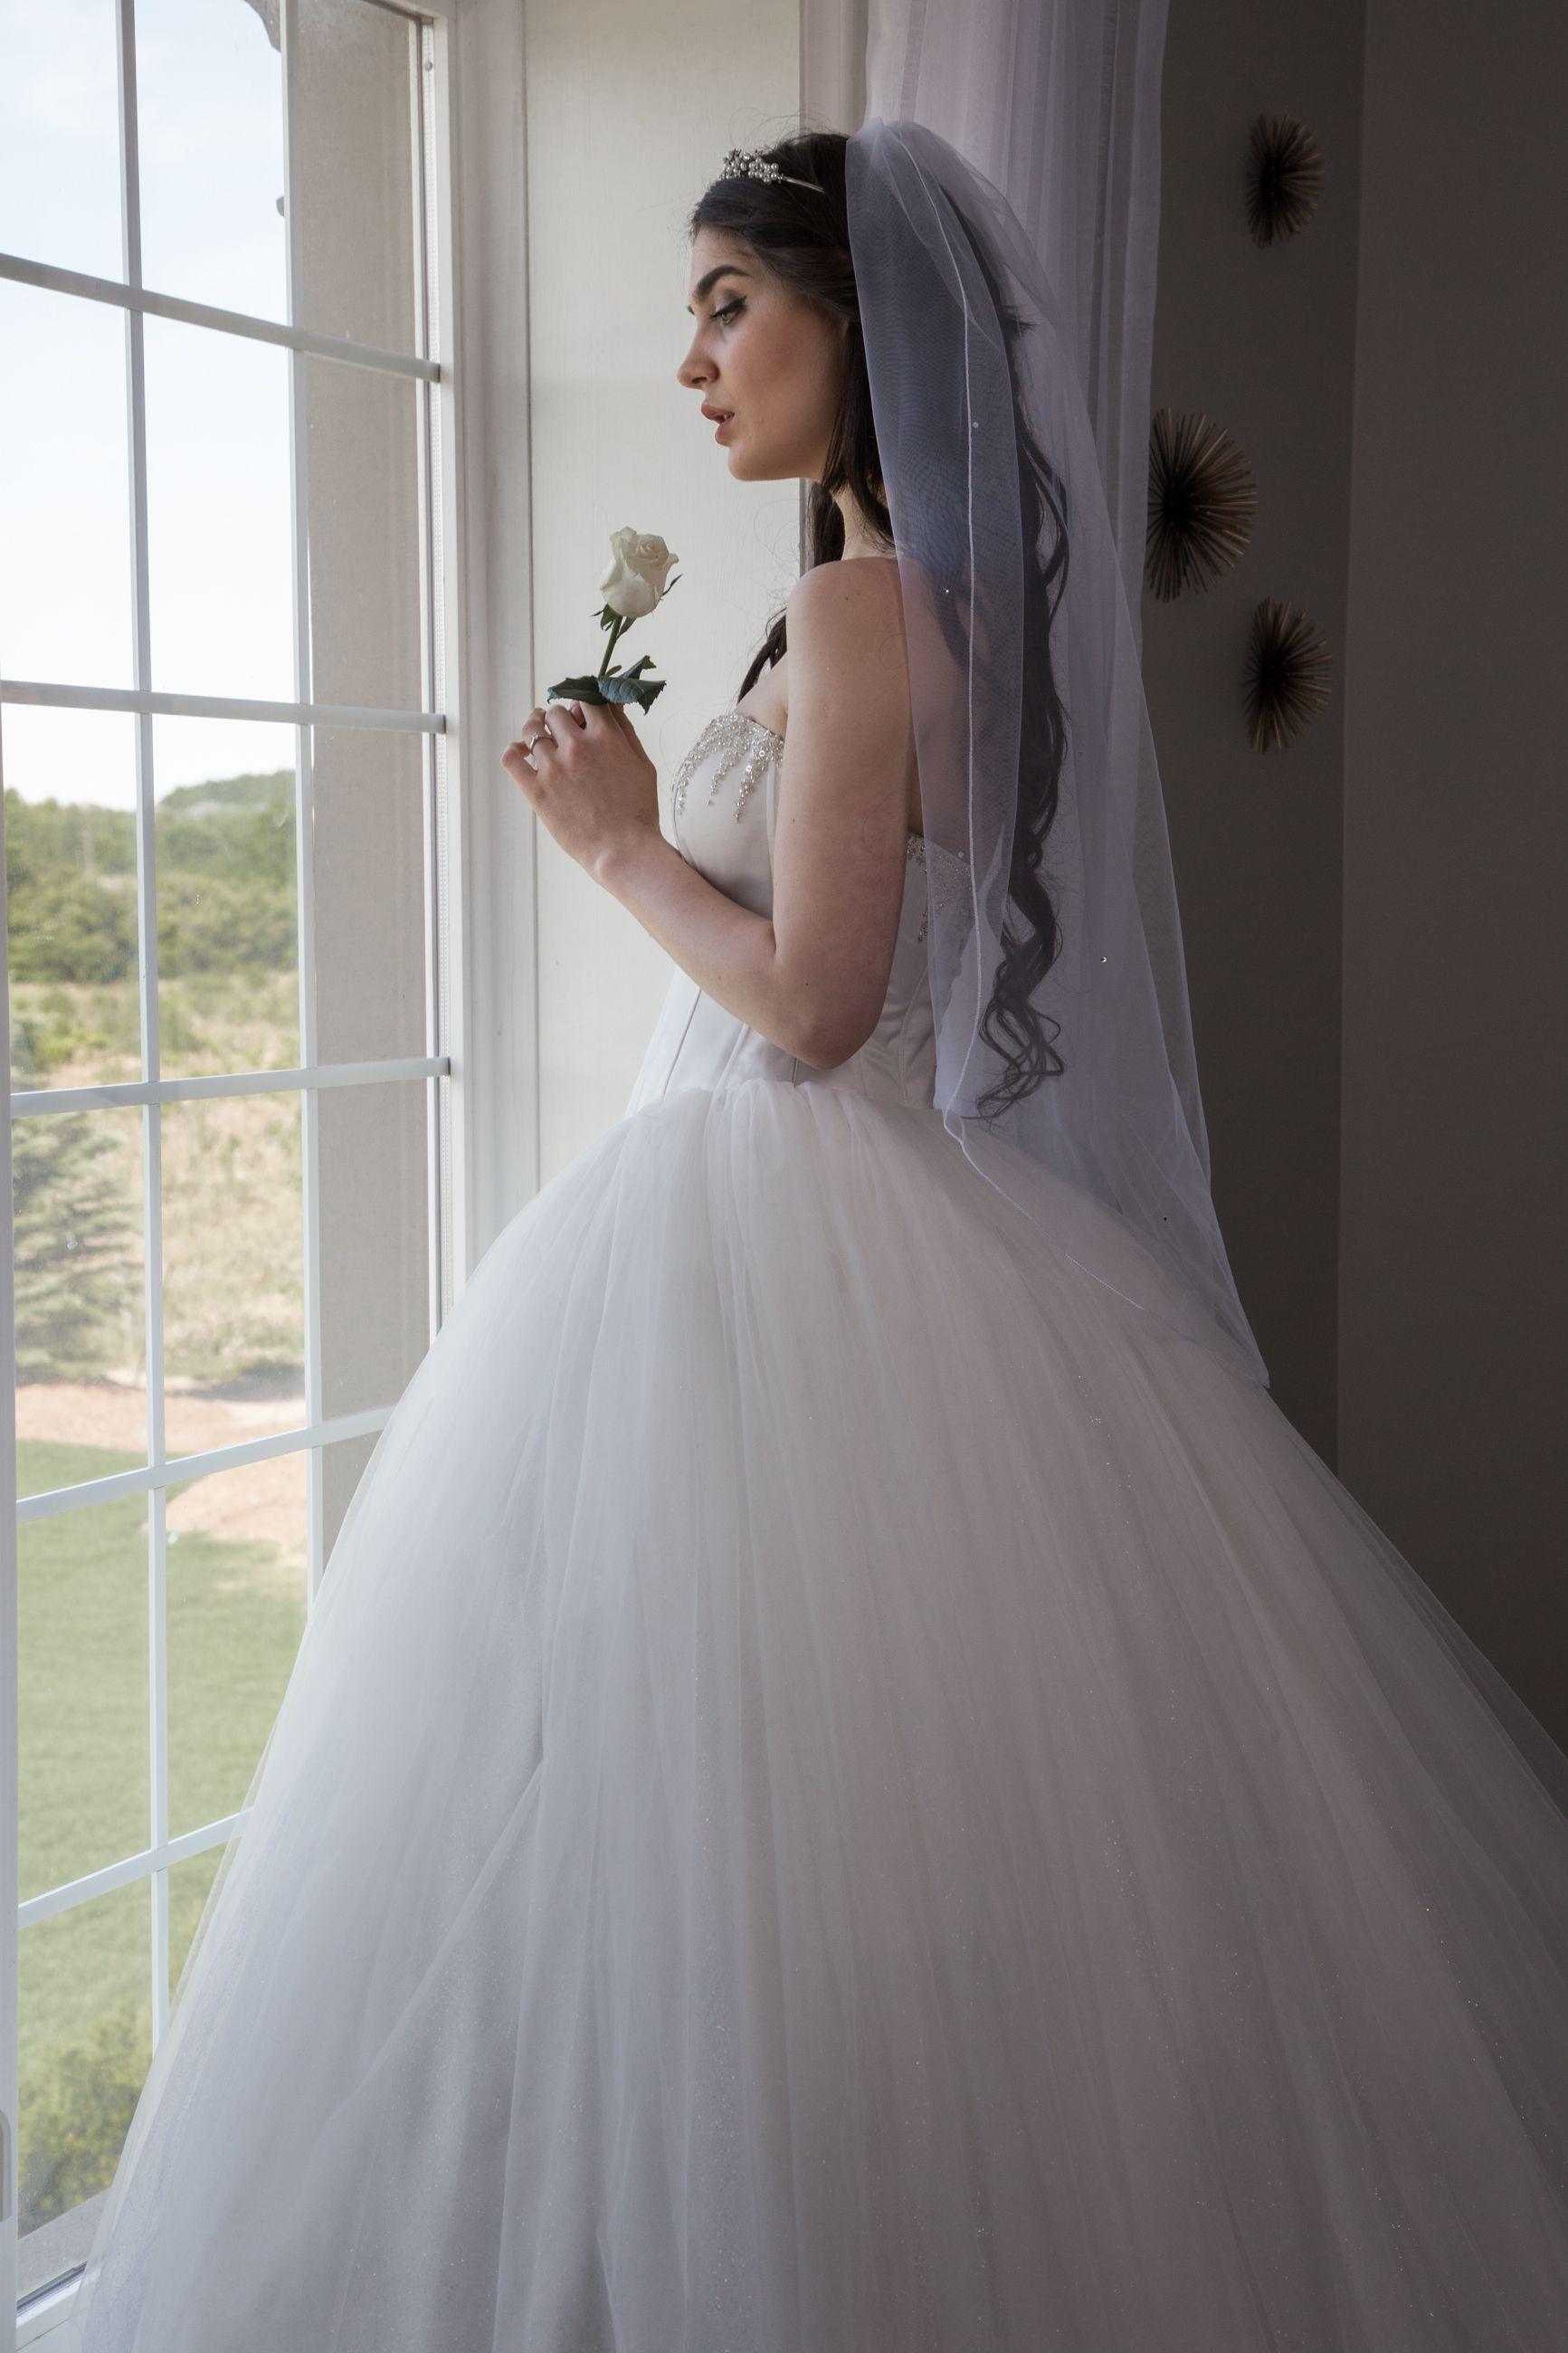 Ballgown Bridal Gown, with Corset Top Tulle Skirt and